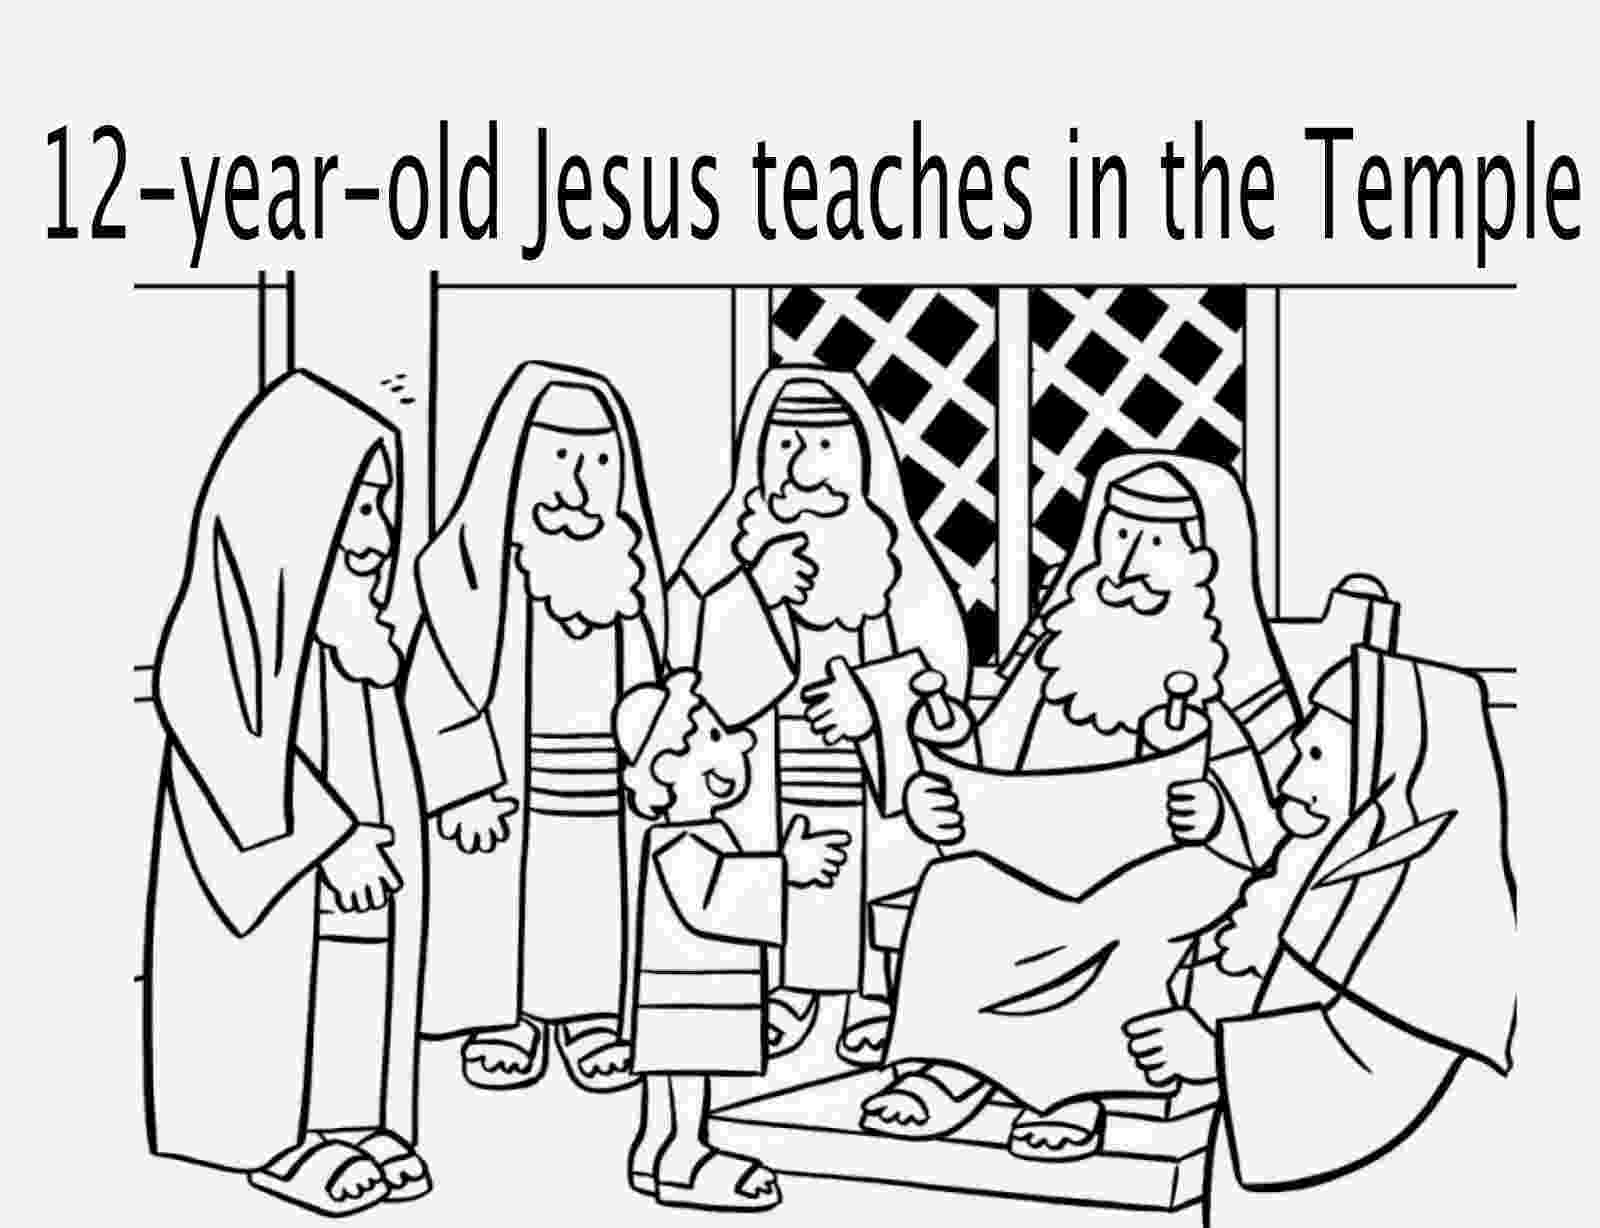 jesus in the temple coloring page jesus in the temple coloring pages 3 pinterest the in jesus page coloring temple